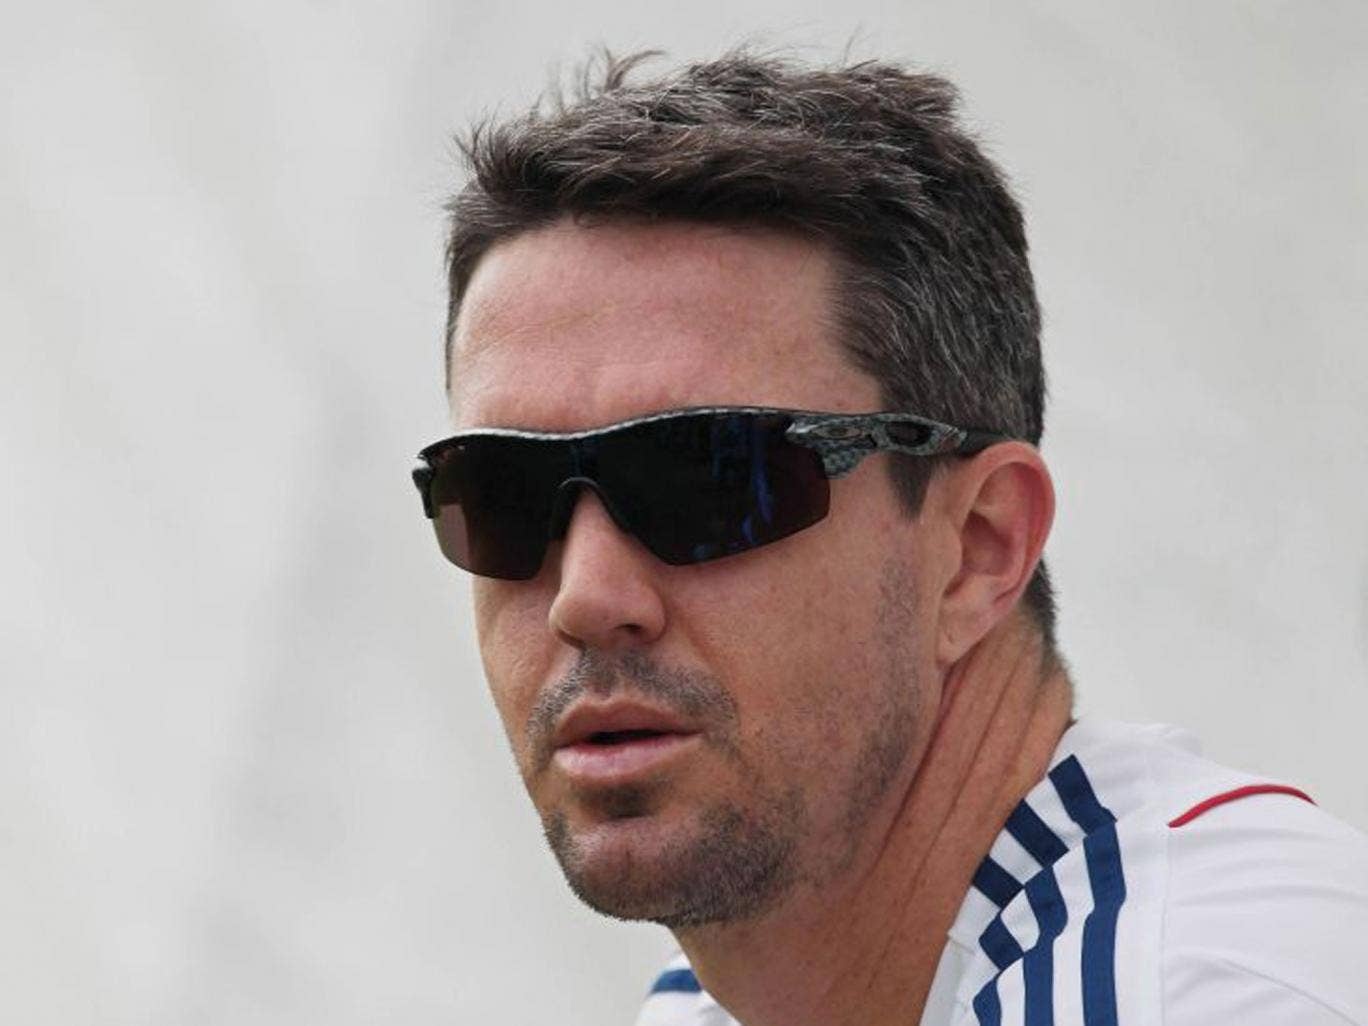 Kevin Pietersen attends a training session ahead of the fourth Ashes Test